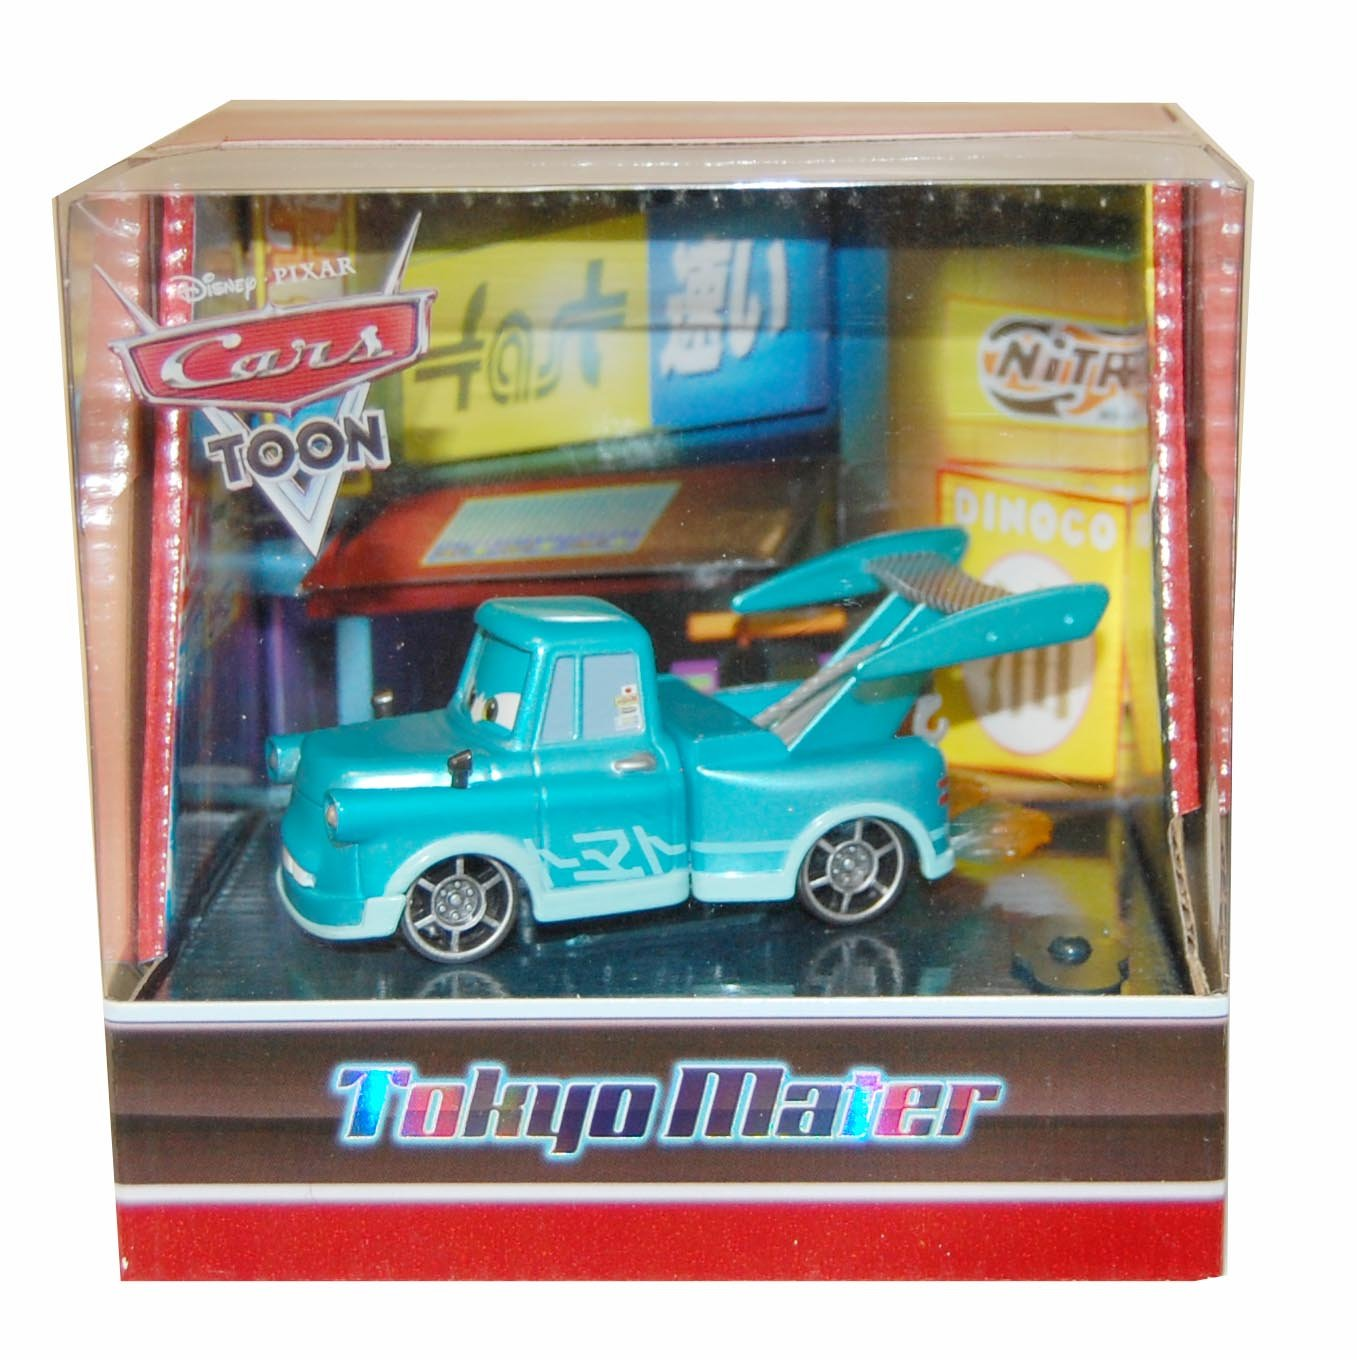 Mattel Disney Pixar Cars Toon 2010 Sdcc San Diego Tomica Series Dream Star 5th Anniversary Comiccon Exclusive Tokyo Toys Games